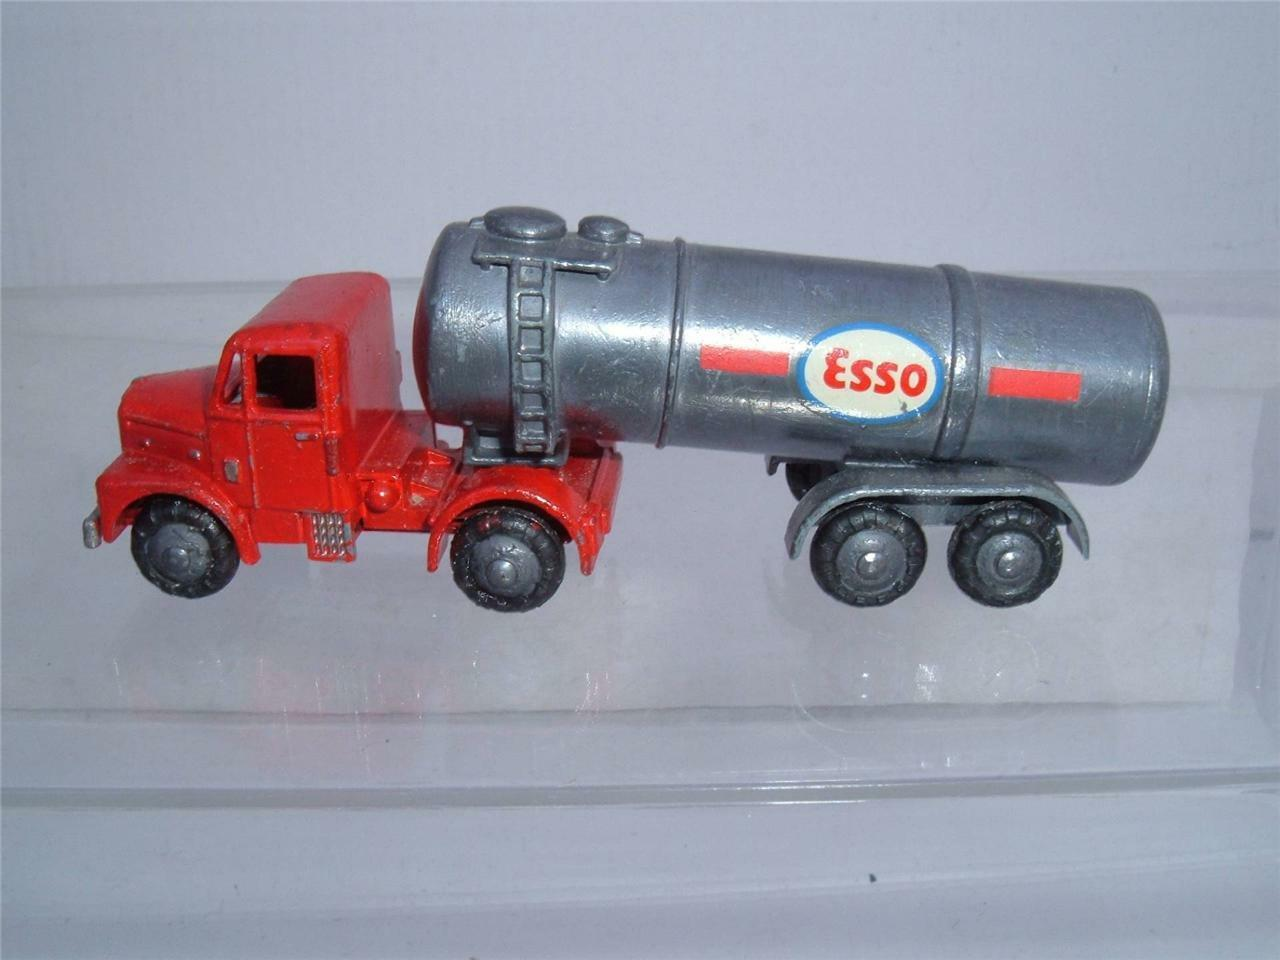 MORESTONE SCAMMELL TANKER DONE IN ESS0 PETROL LIVERY SEE THE PHOTOS VINTAGE